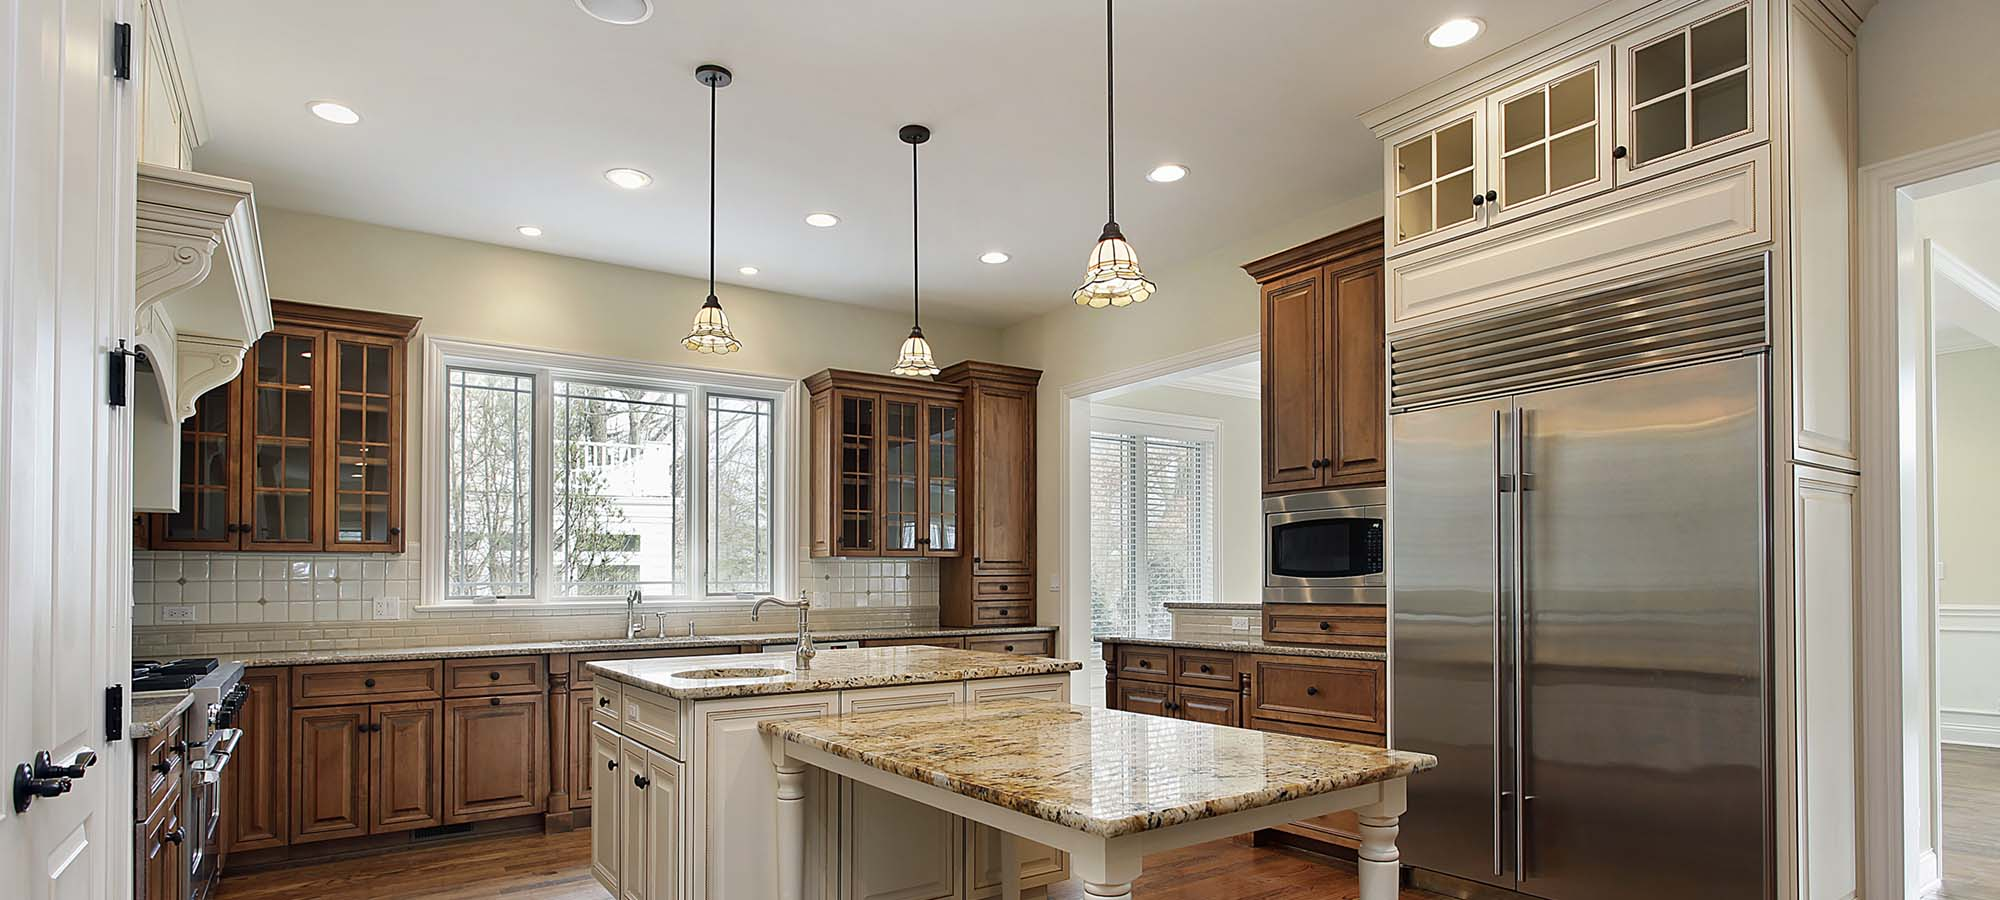 kitchen lighting images. Kitchen Lighting Images